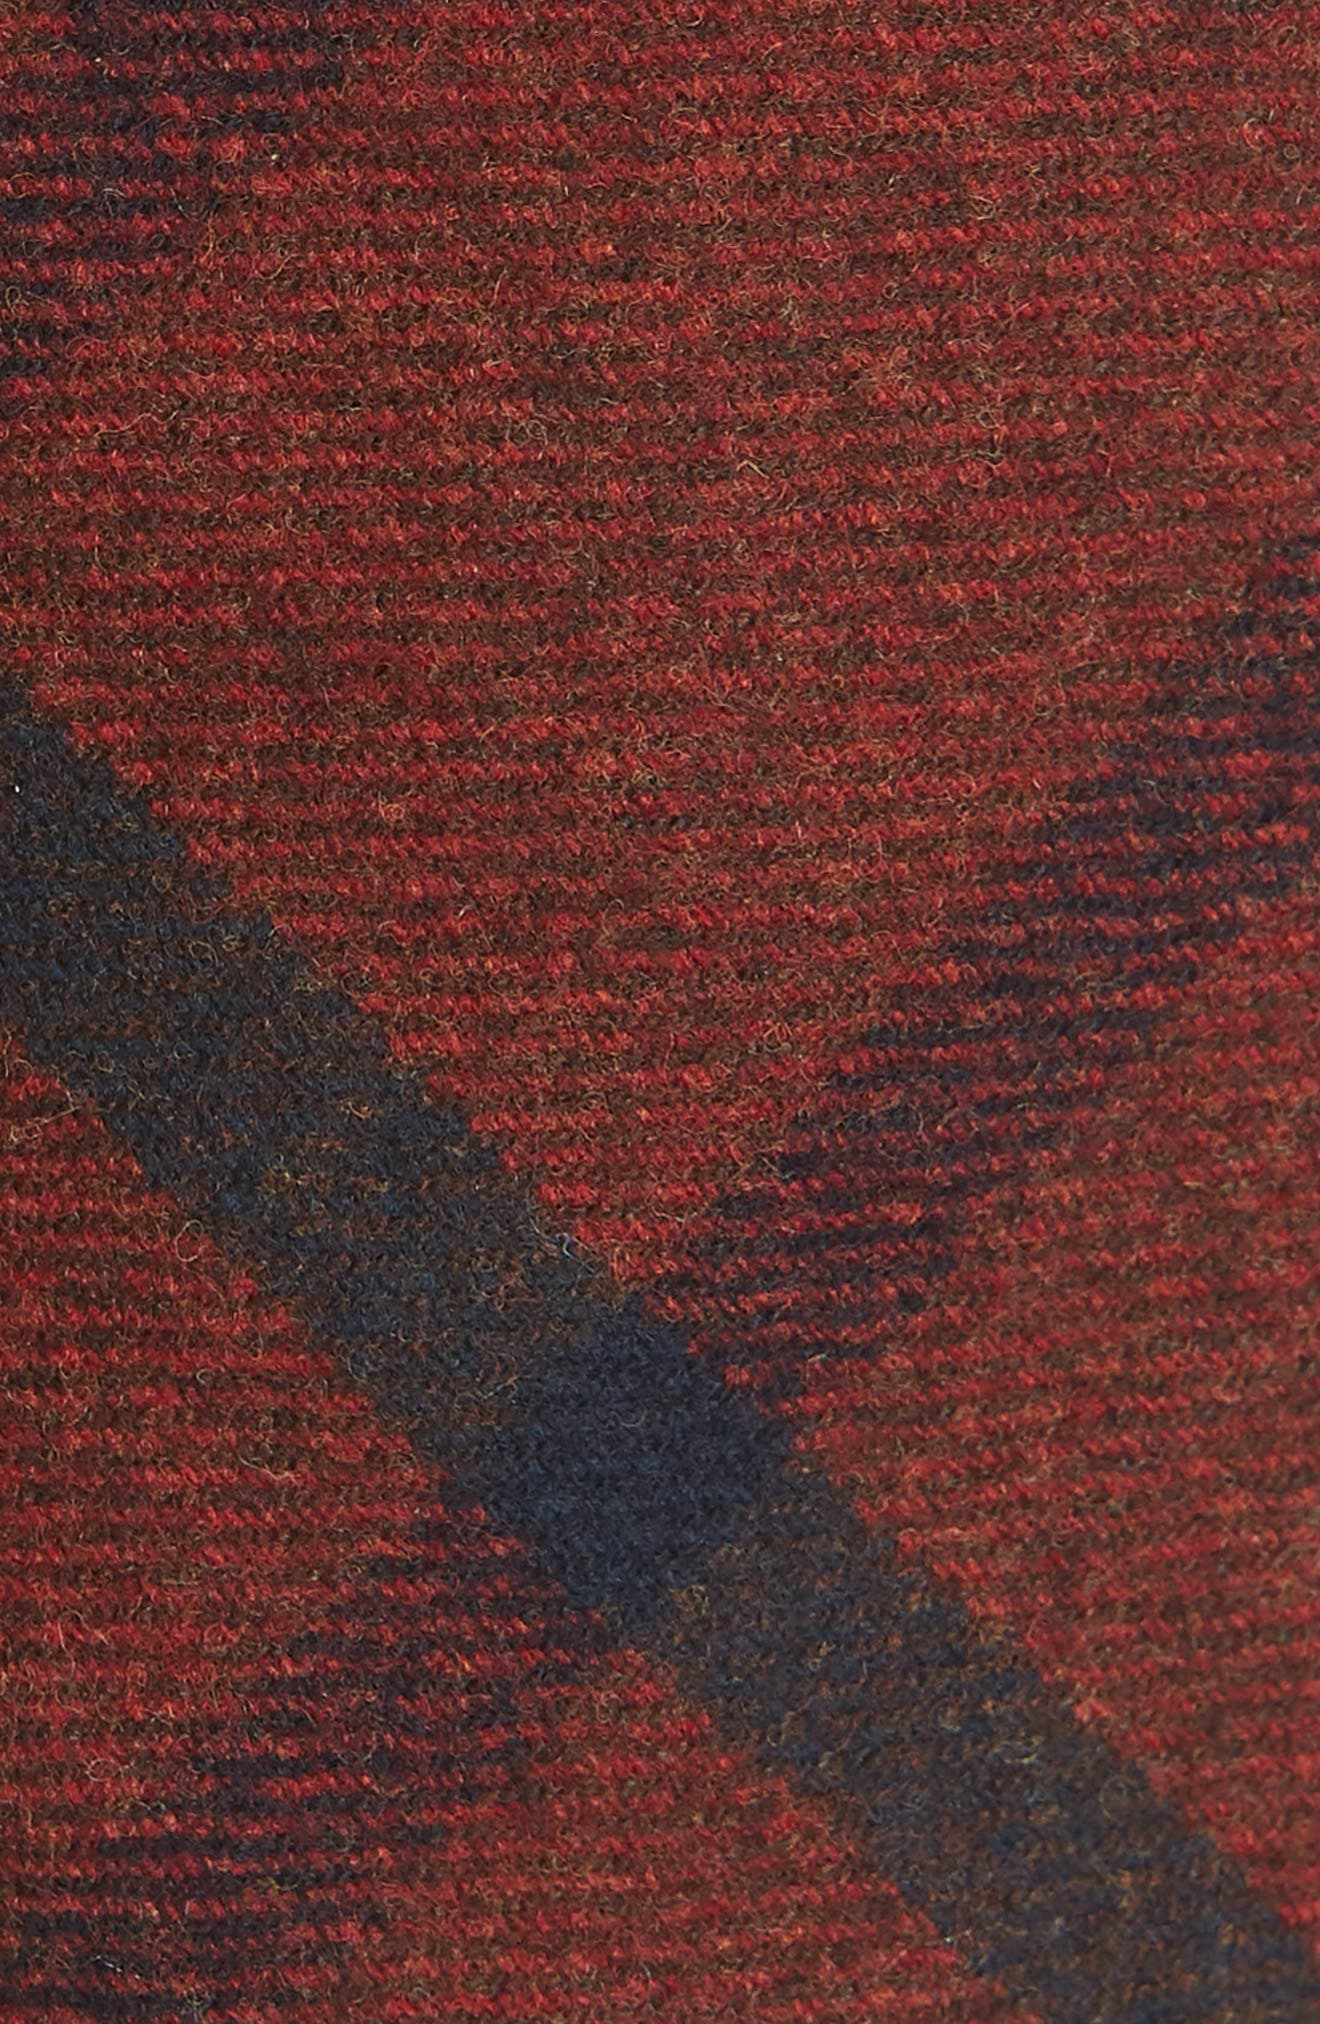 Mosso Plaid Wool Tie,                             Alternate thumbnail 2, color,                             RED